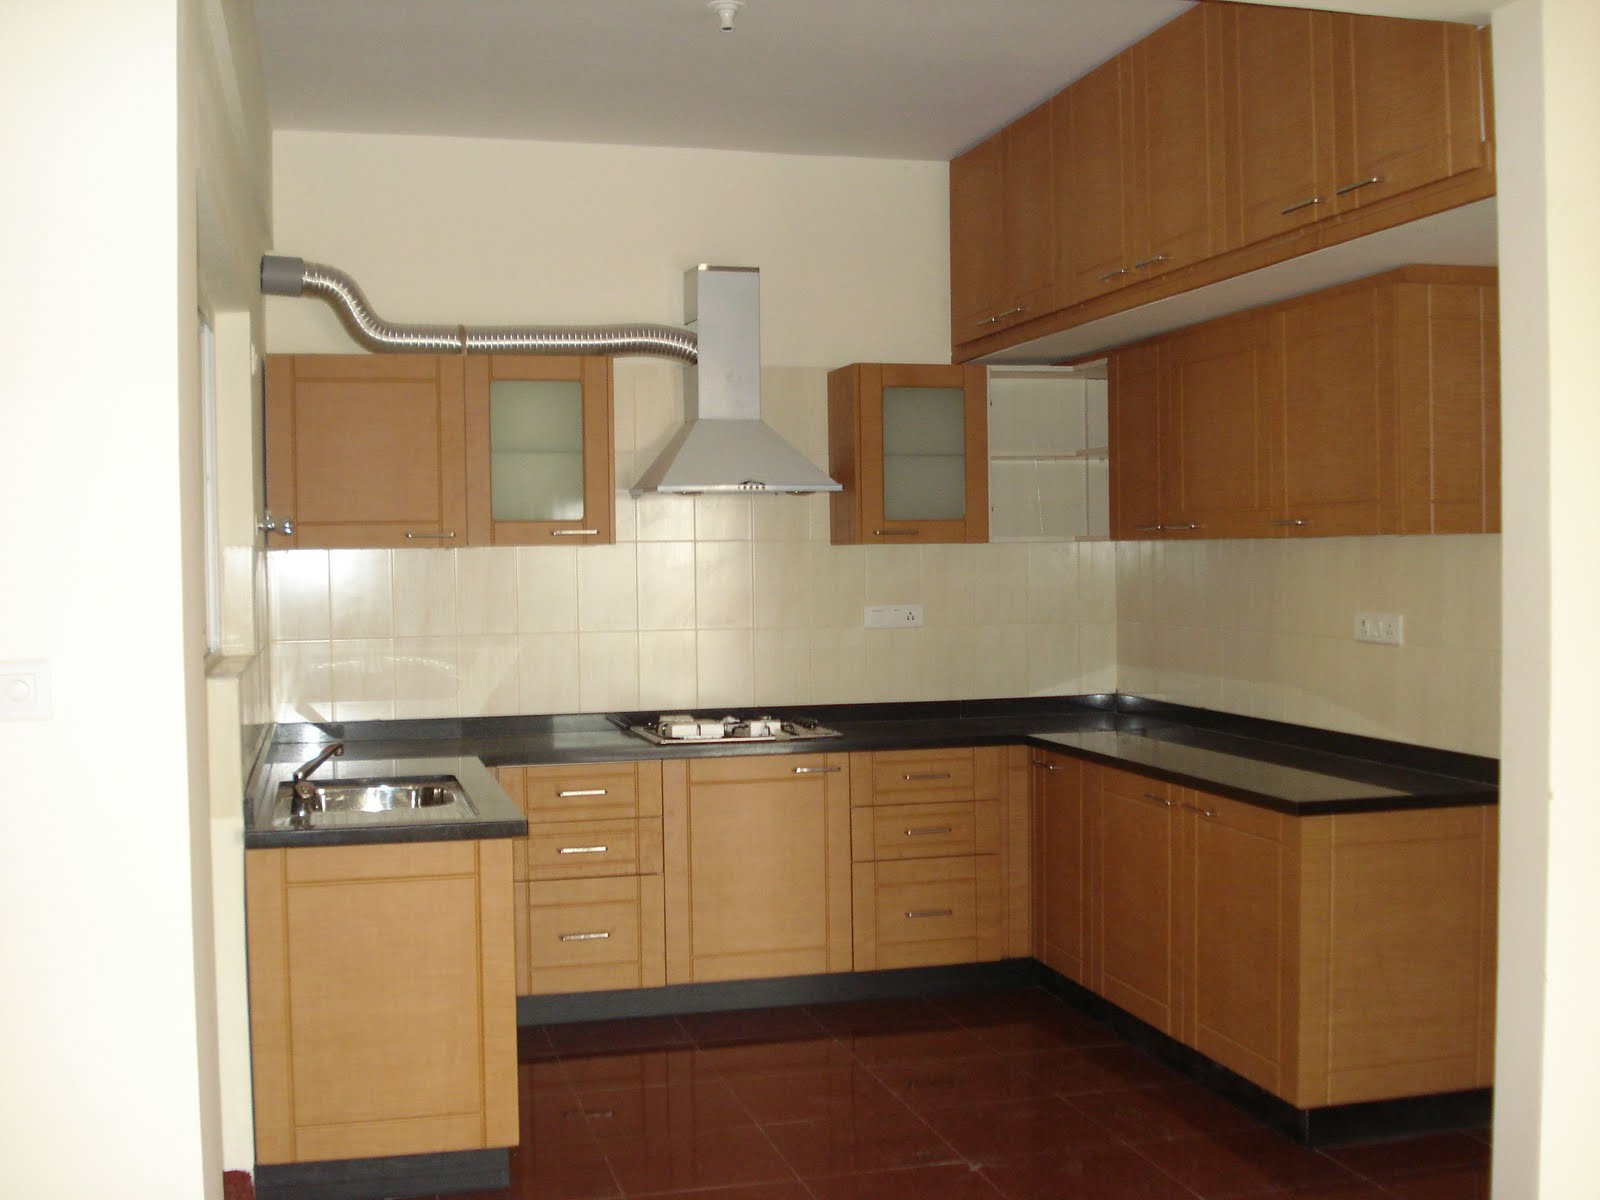 Small indian kitchen design pictures - New Material For Interior Design In India Decor For Small Apartments Kitchen